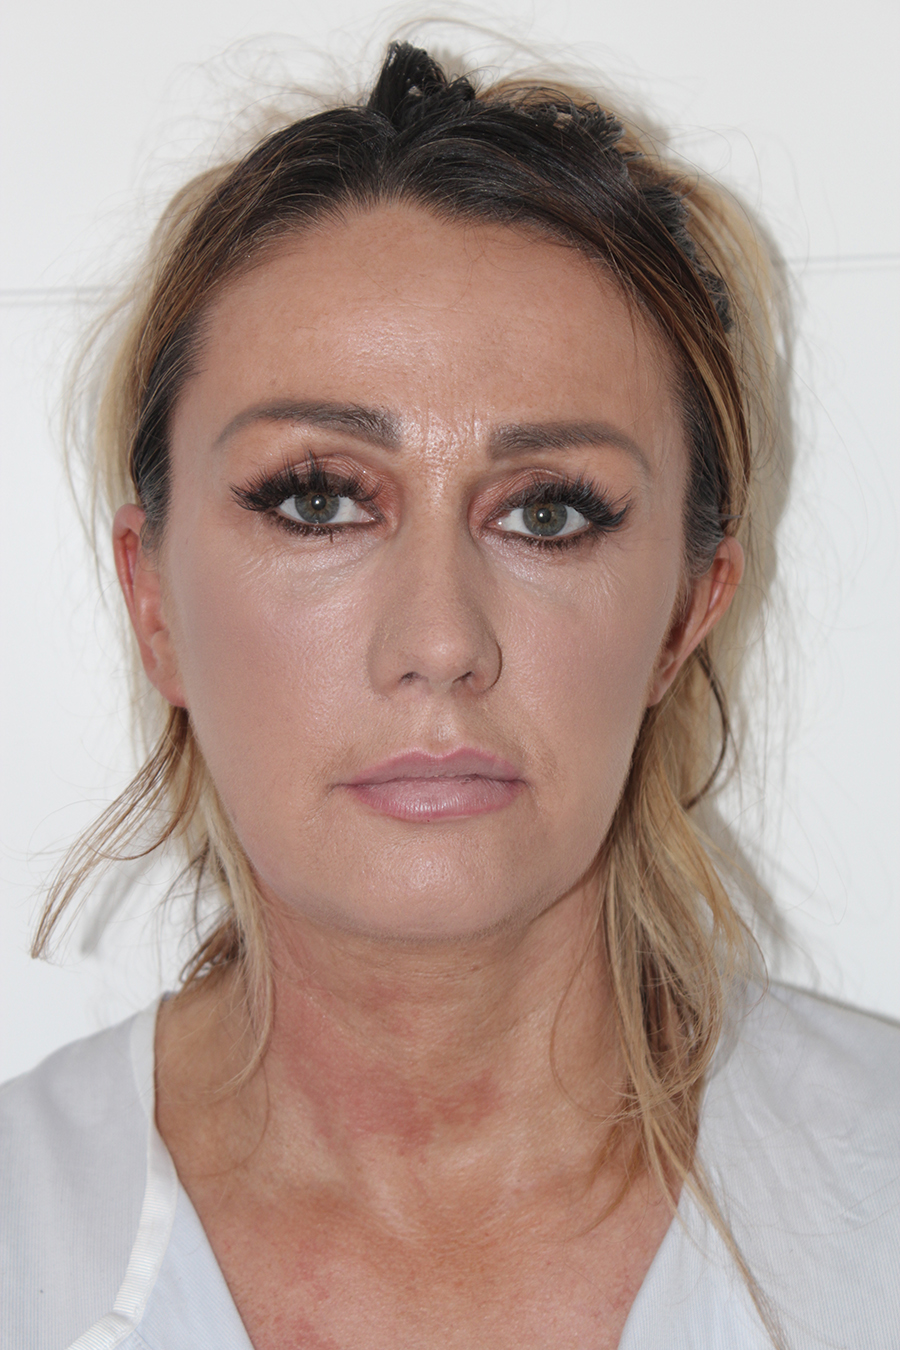 rebecca-lord-ukaesthetics-clinic-contour-package-dermal-fillers-treatment-uk-after-1